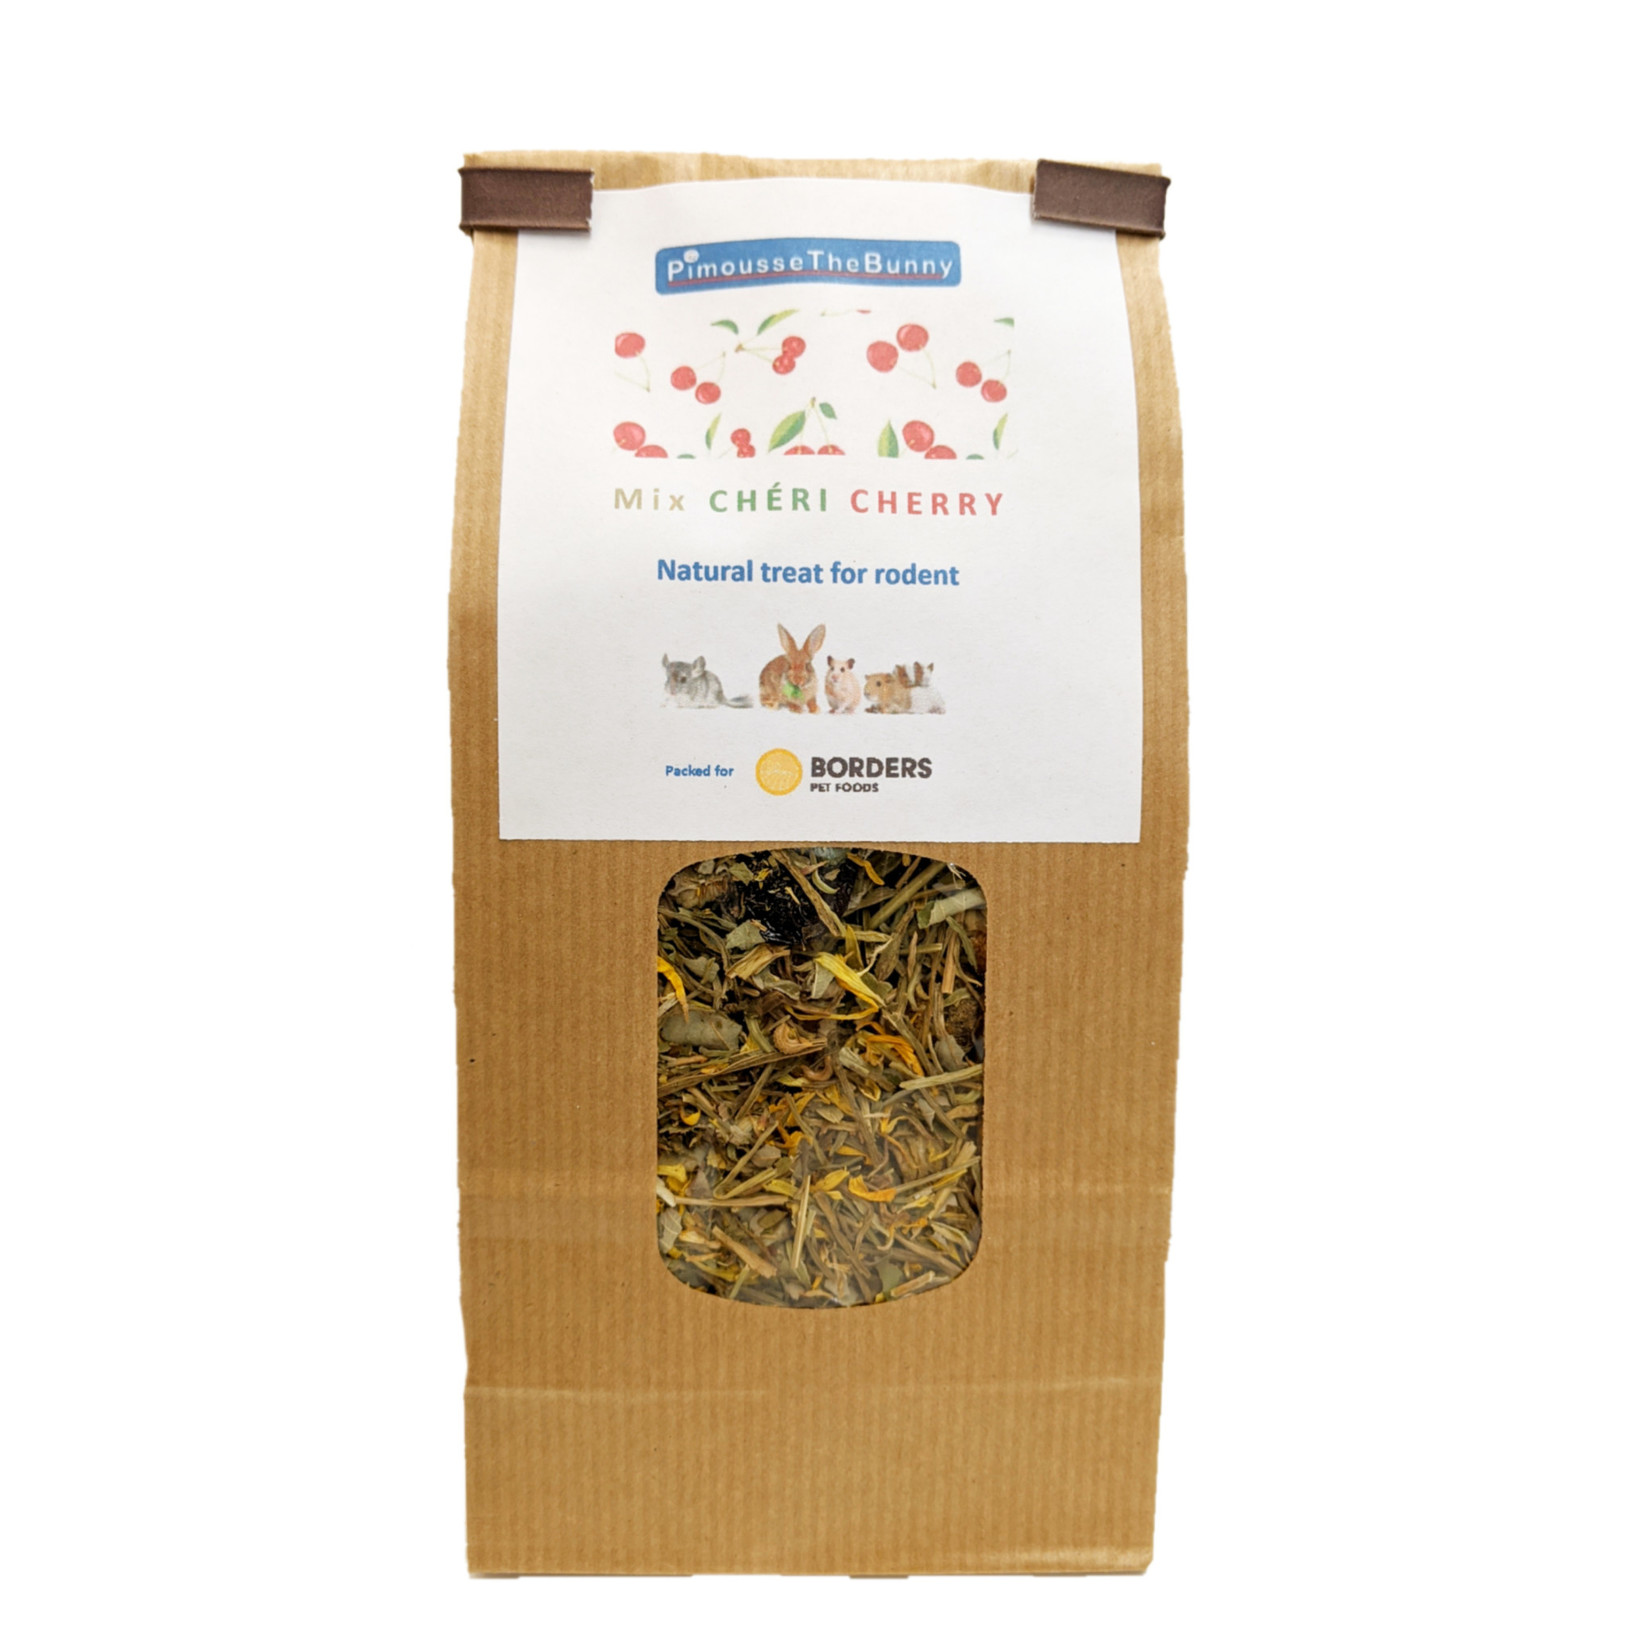 Borders Complete Small Animal Mix Chéri Cherry - organic cherries, cranberry, raspberry leaves, parsley, marigold 70g